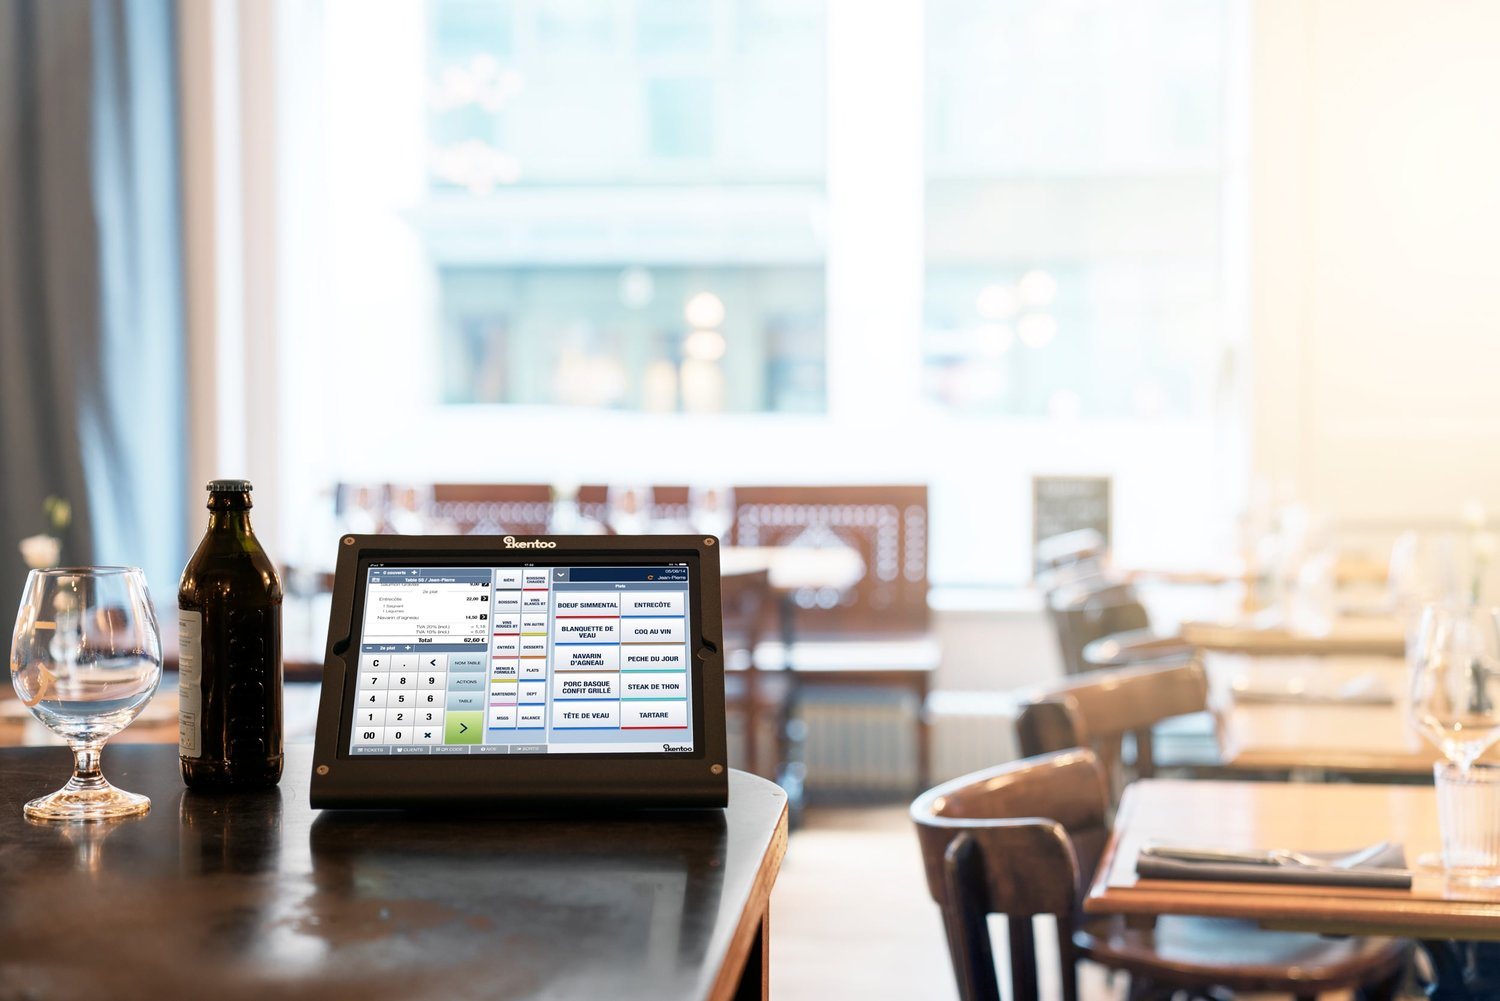 iPad®-based Hospitality Point of Sale and business management system ...